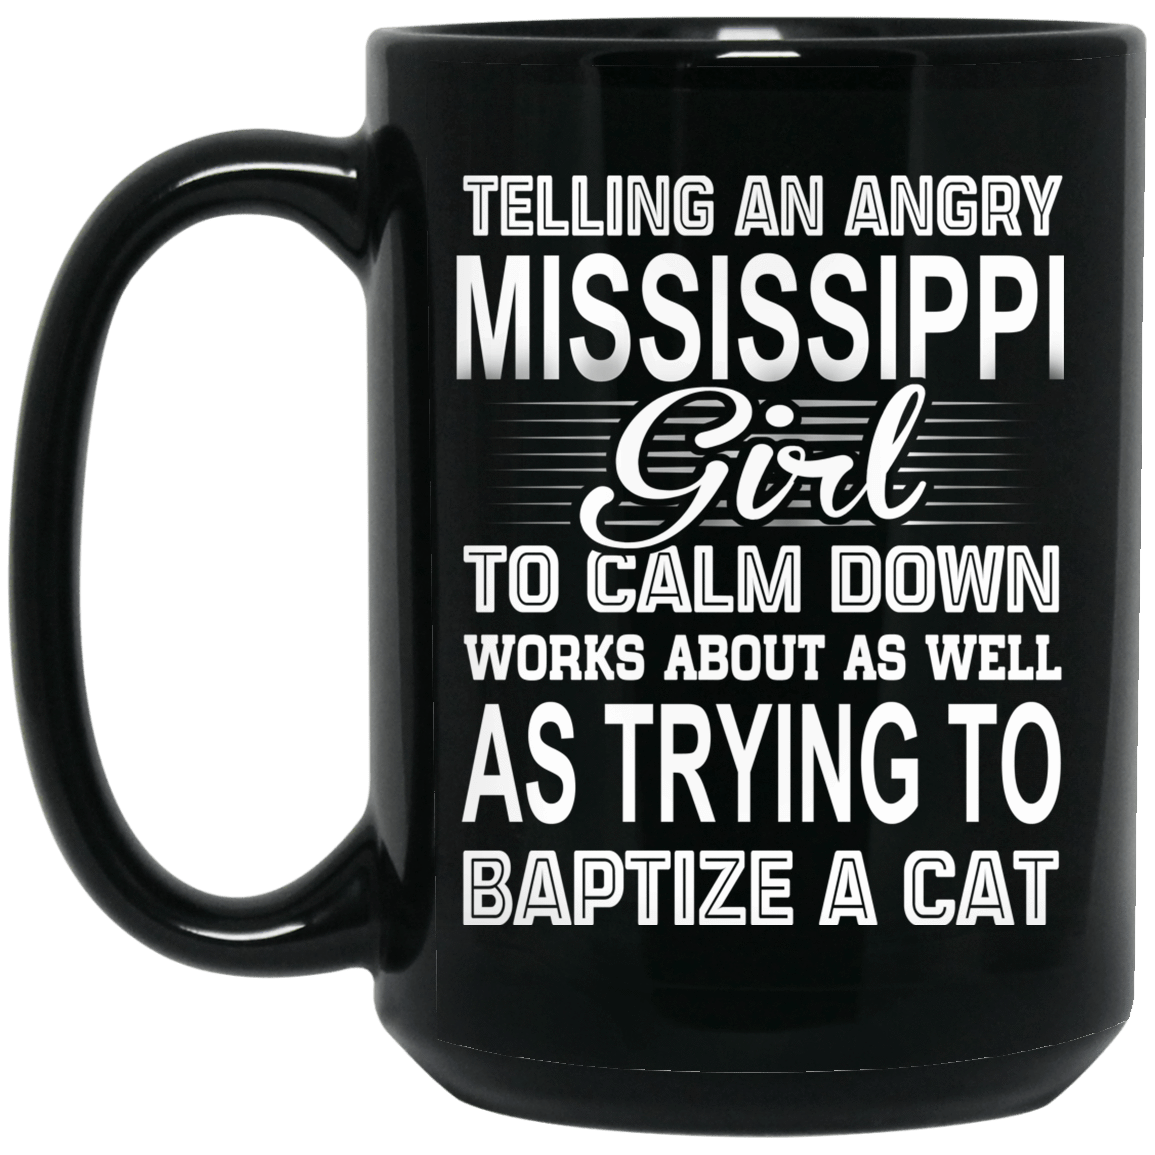 Telling An Angry Mississippi Girl To Calm Down Works About As Well As Trying To Baptize A Cat Mug 1066-10182-76151630-49311 - Tee Ript